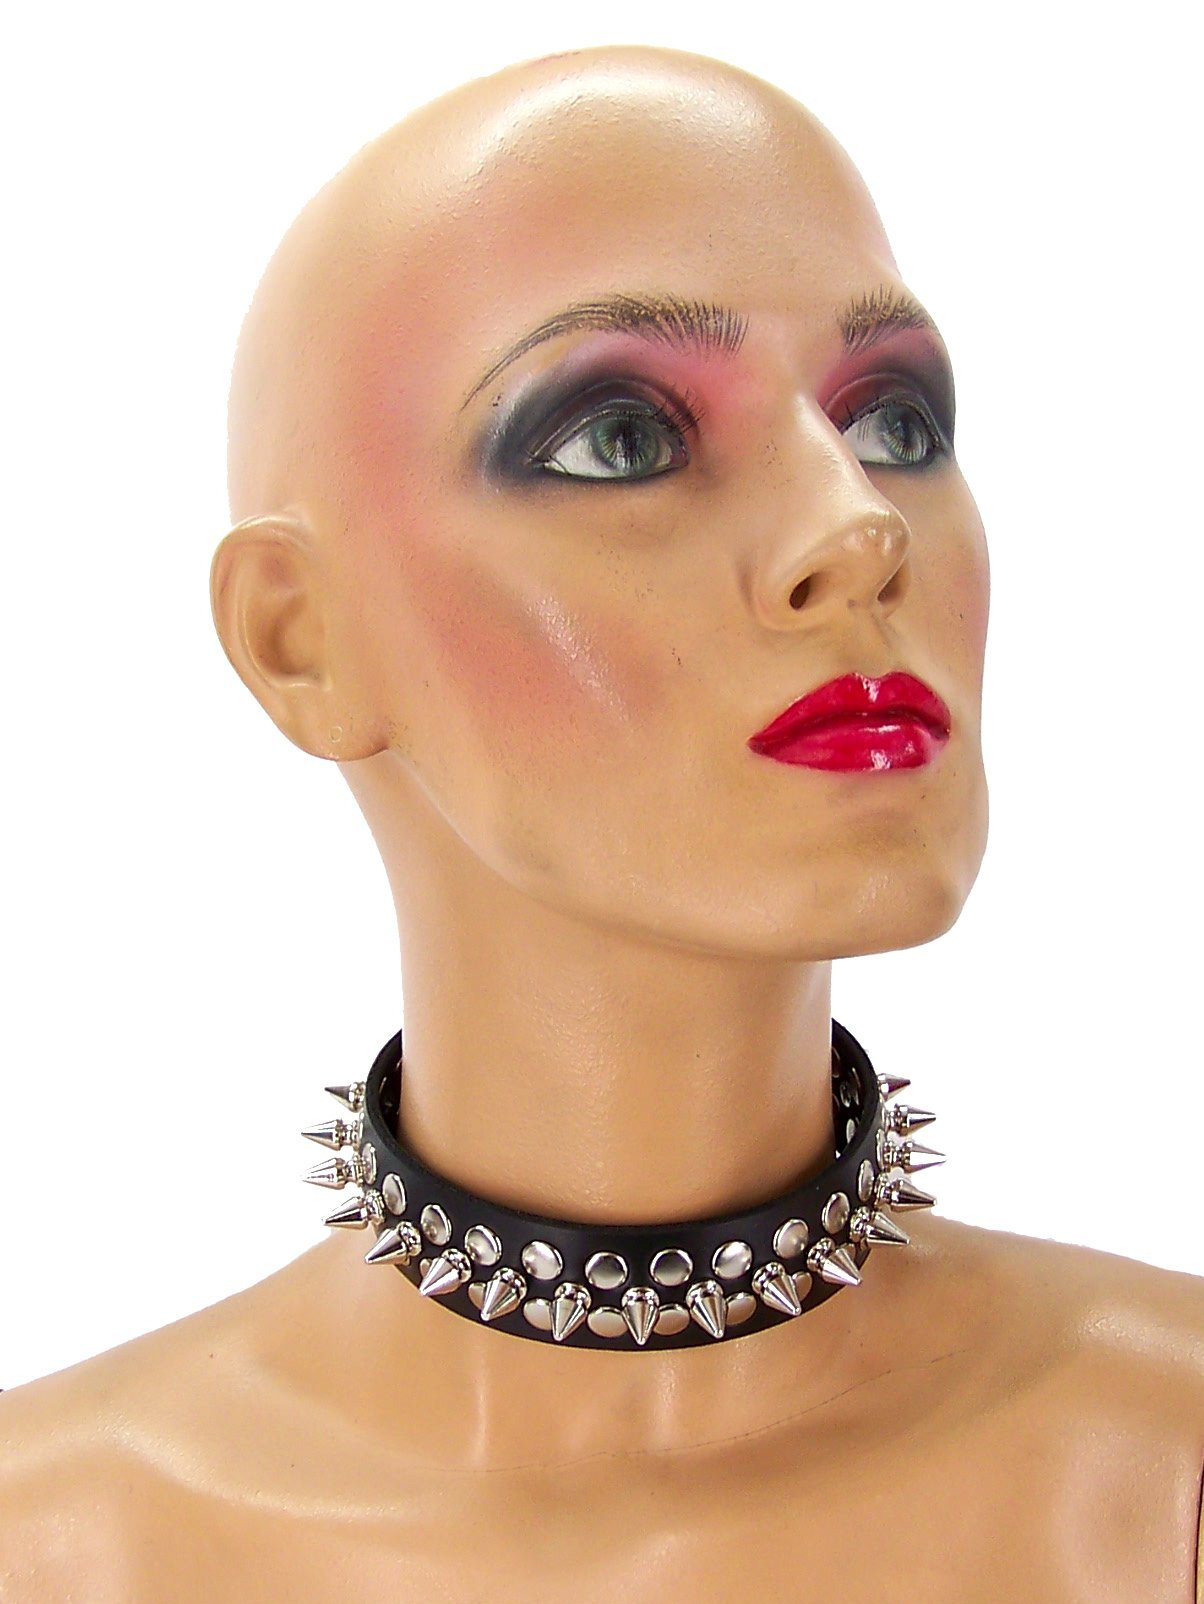 1/2 Metal Punk Spiked Leather Choker (Large) by Axovus